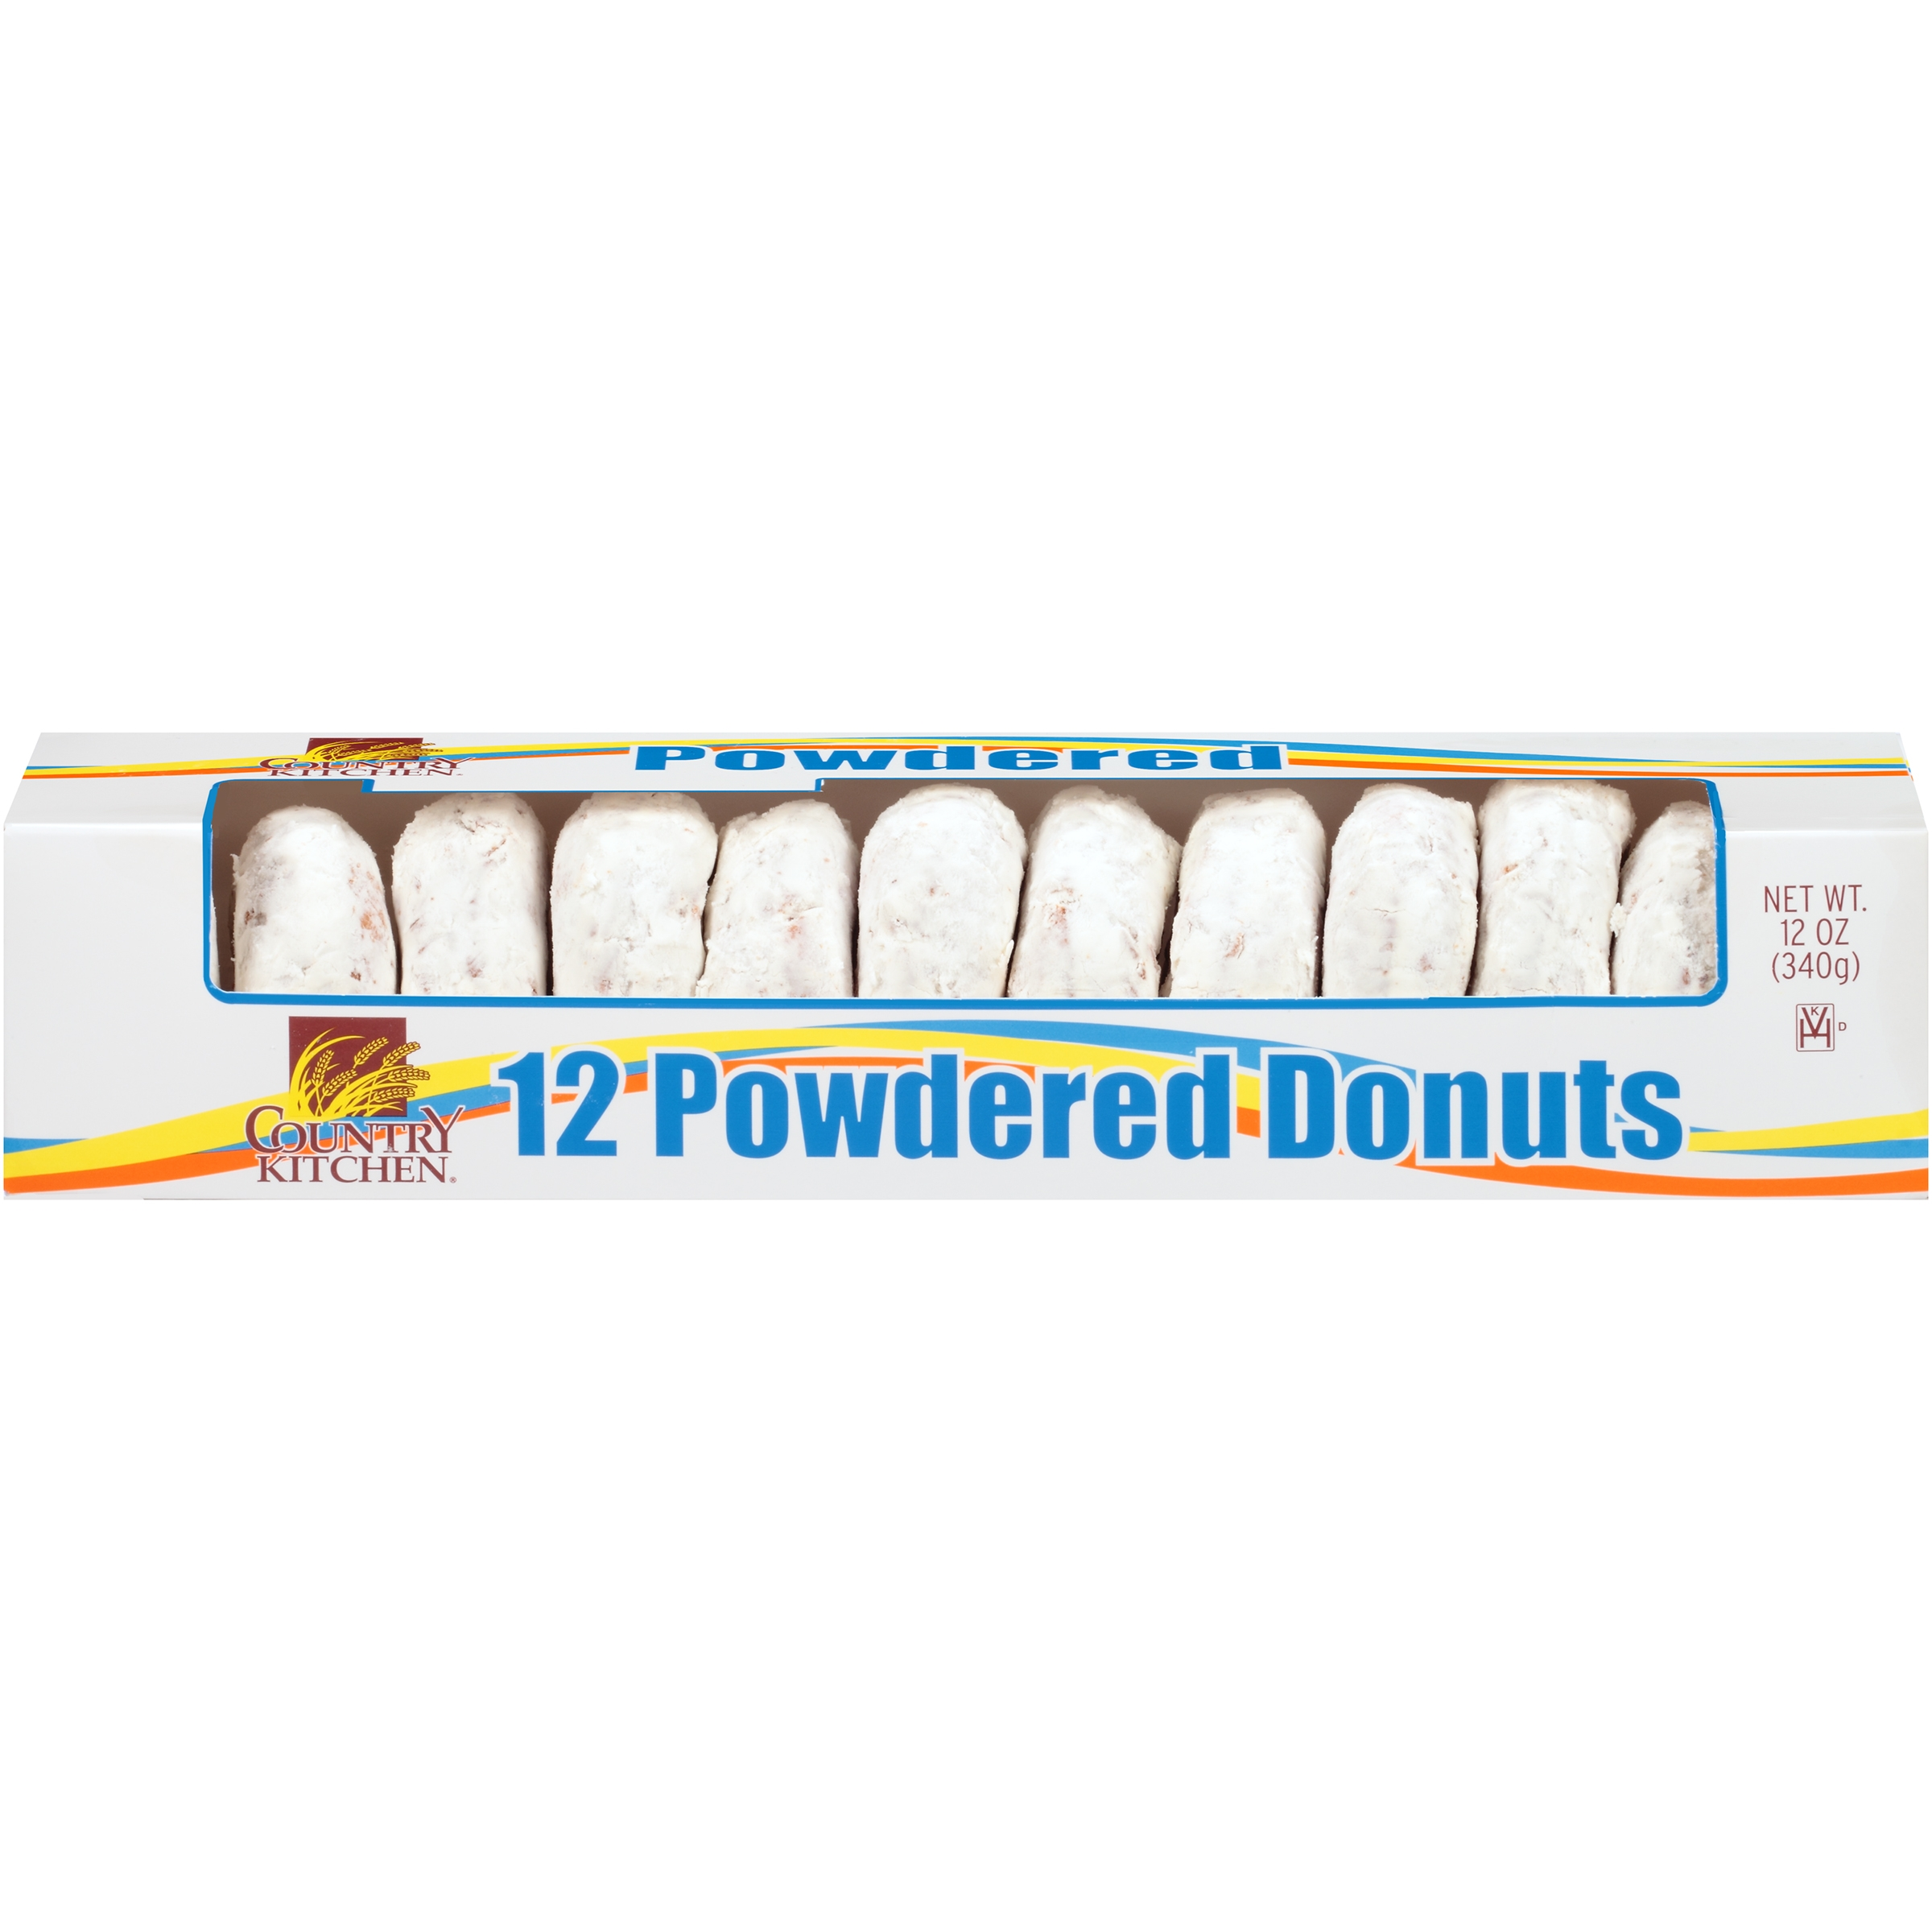 country kitchen powdered donuts 12 ct box walmart com pa wiring diagram donut ct wiring diagram [ 2400 x 2400 Pixel ]